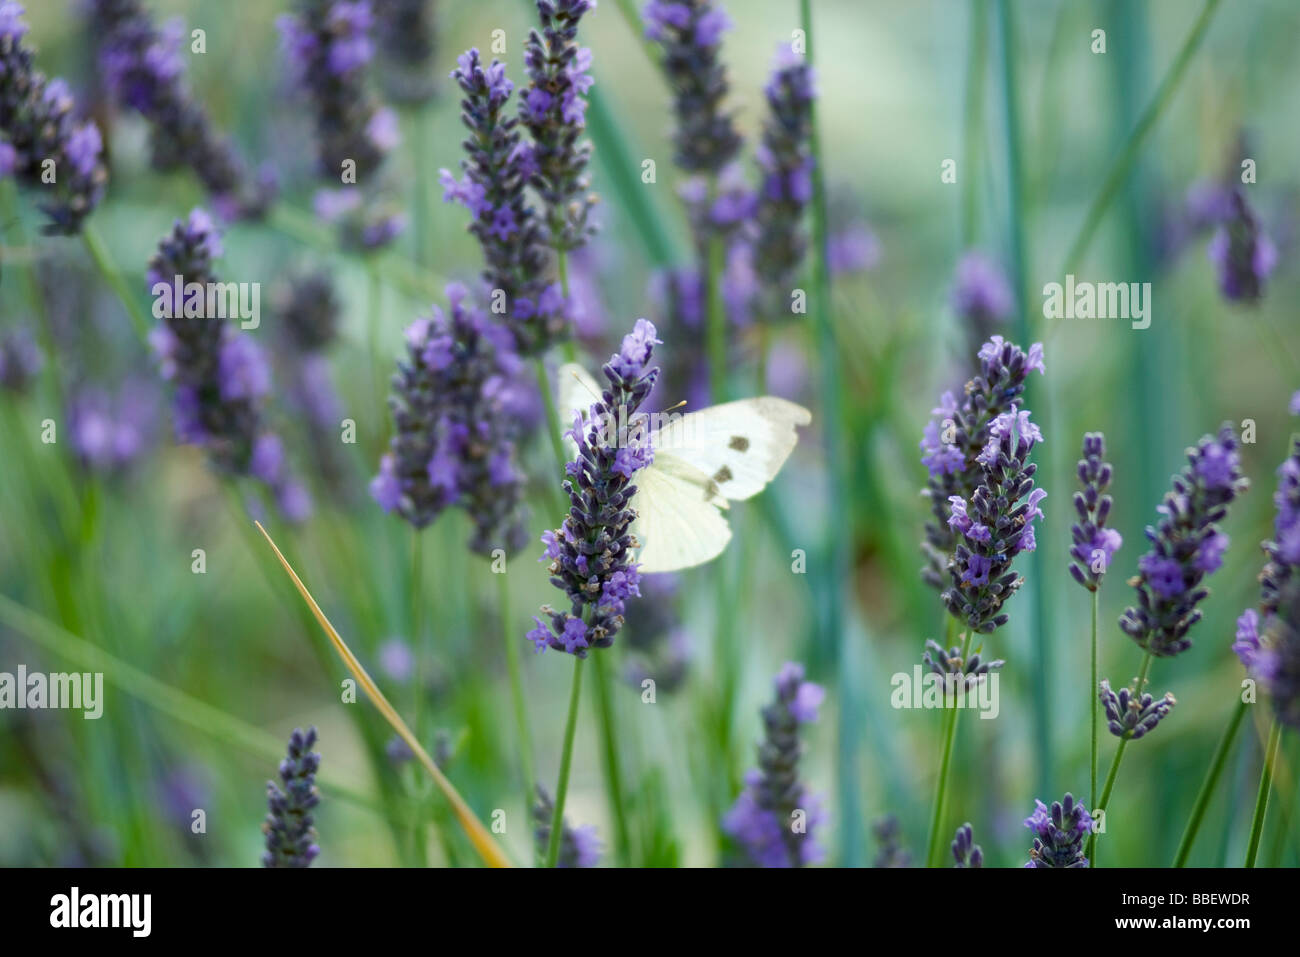 Butterfly resting on lavender - Stock Image